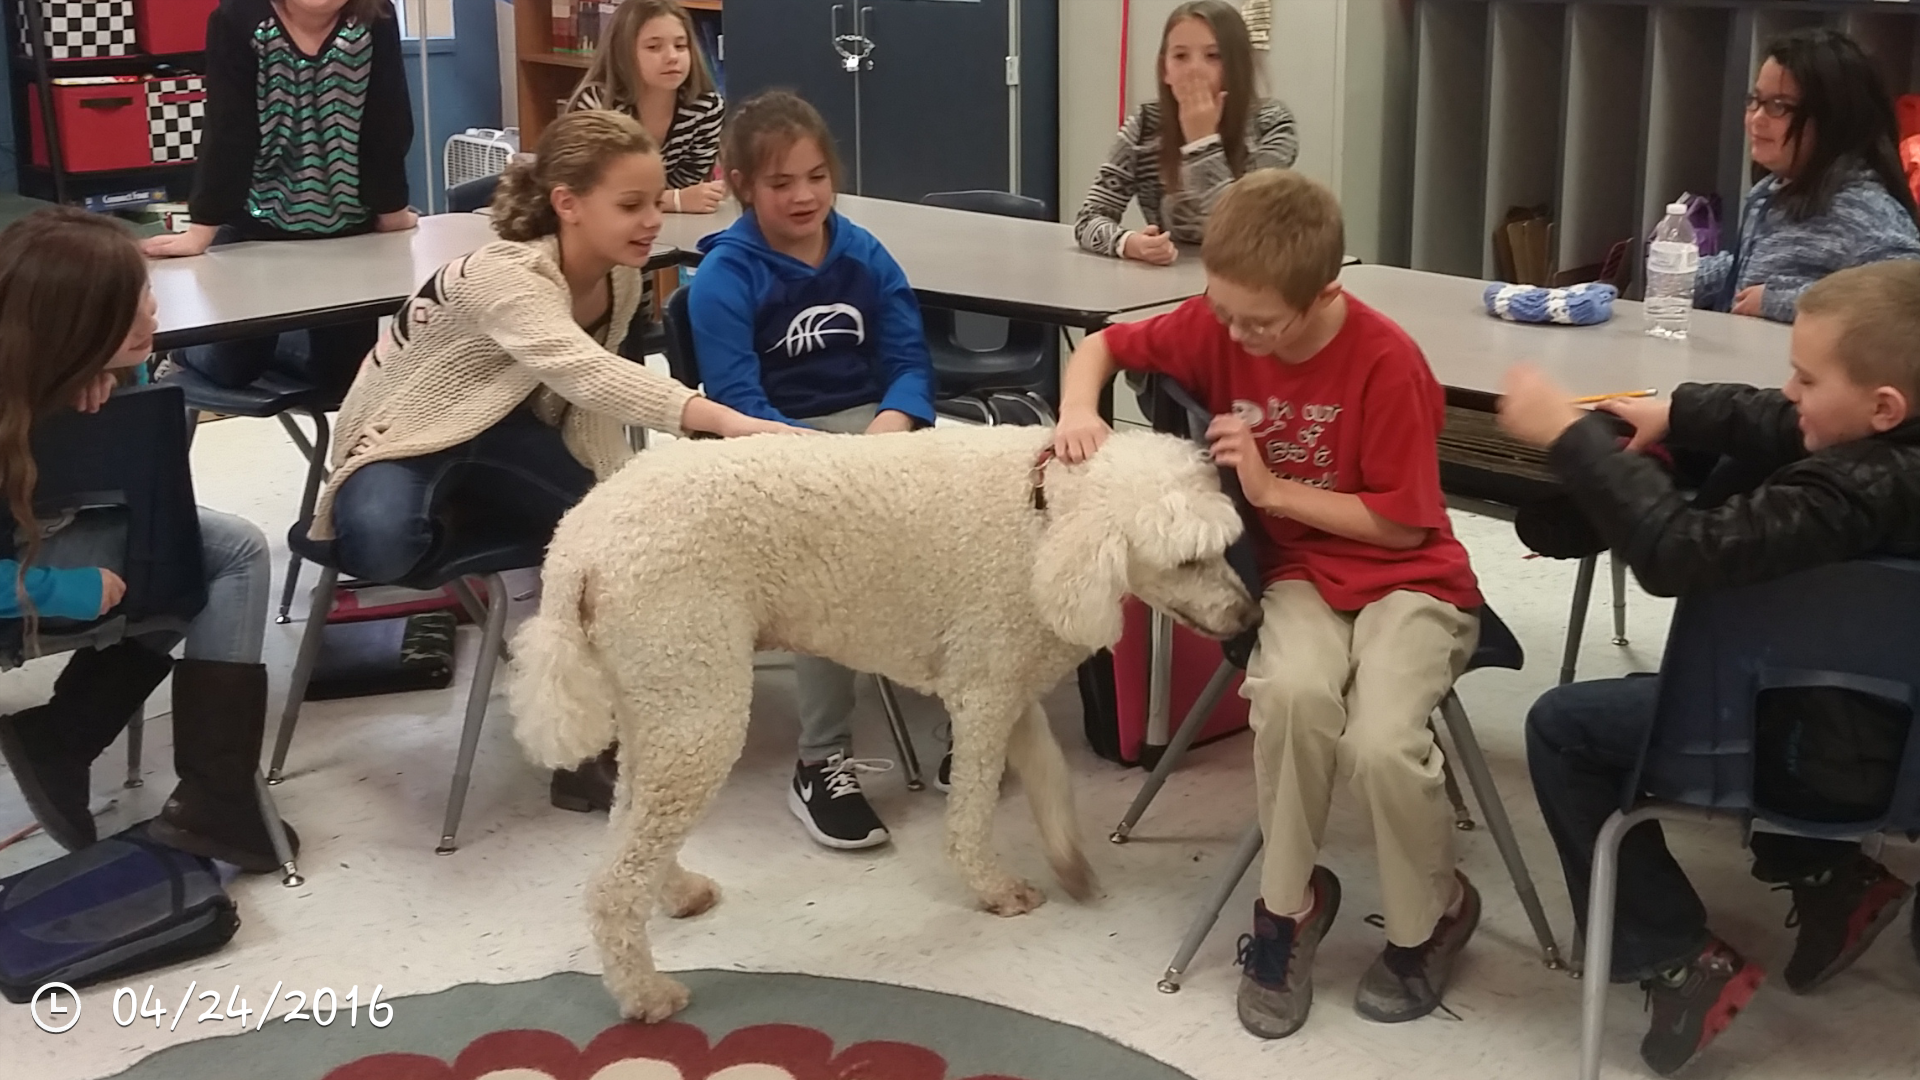 Students interacting with a service dog.